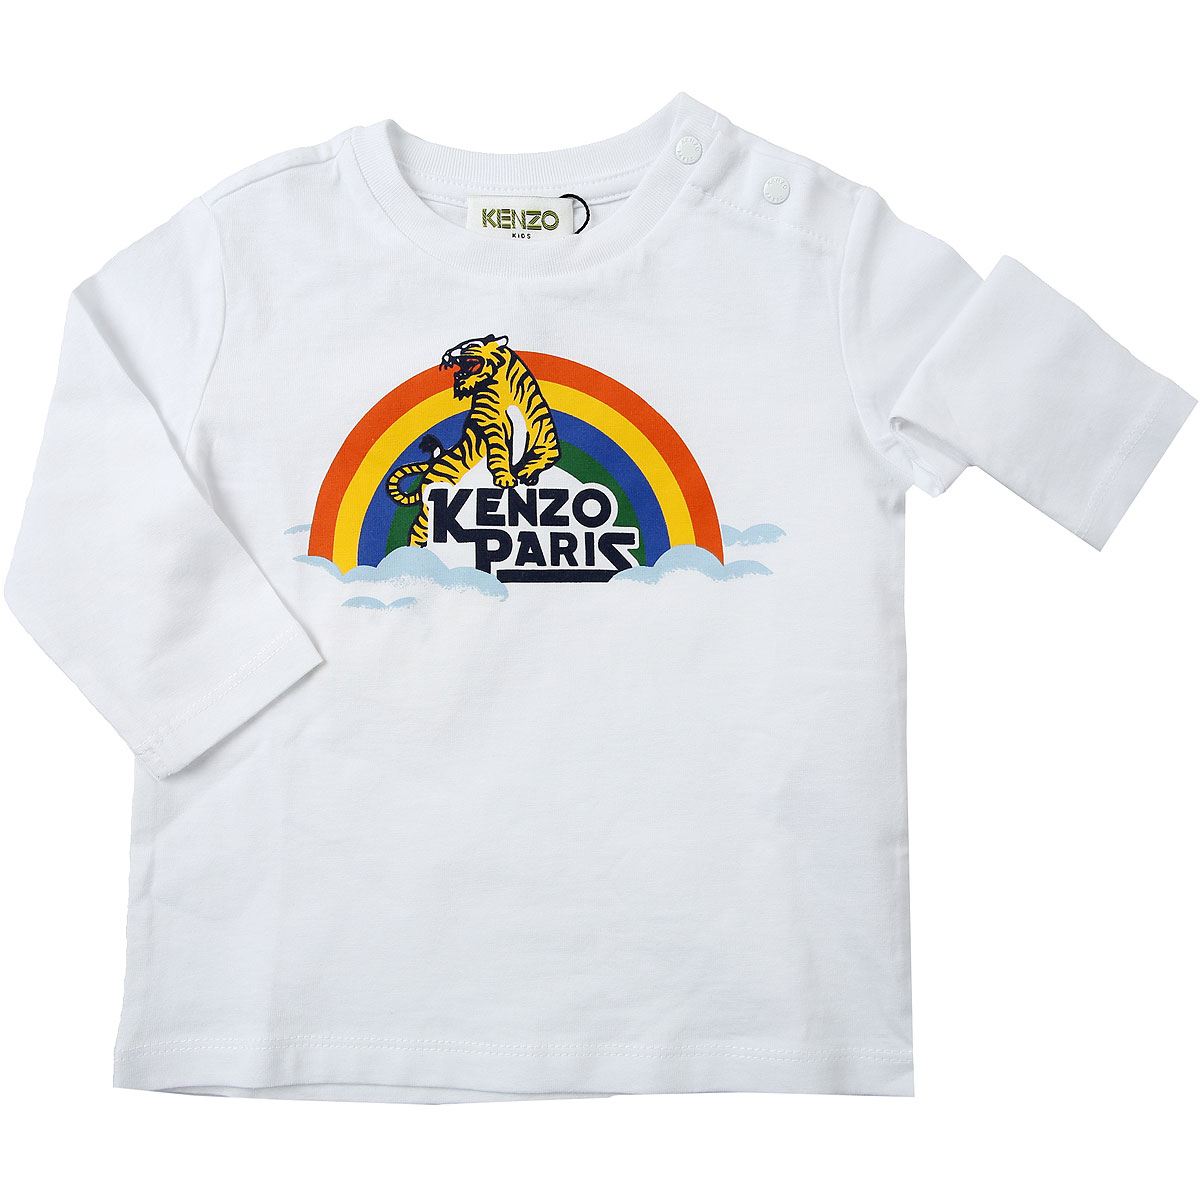 Kenzo Baby T-Shirt for Boys On Sale, White, Cotton, 2019, 12 M 3Y 9M